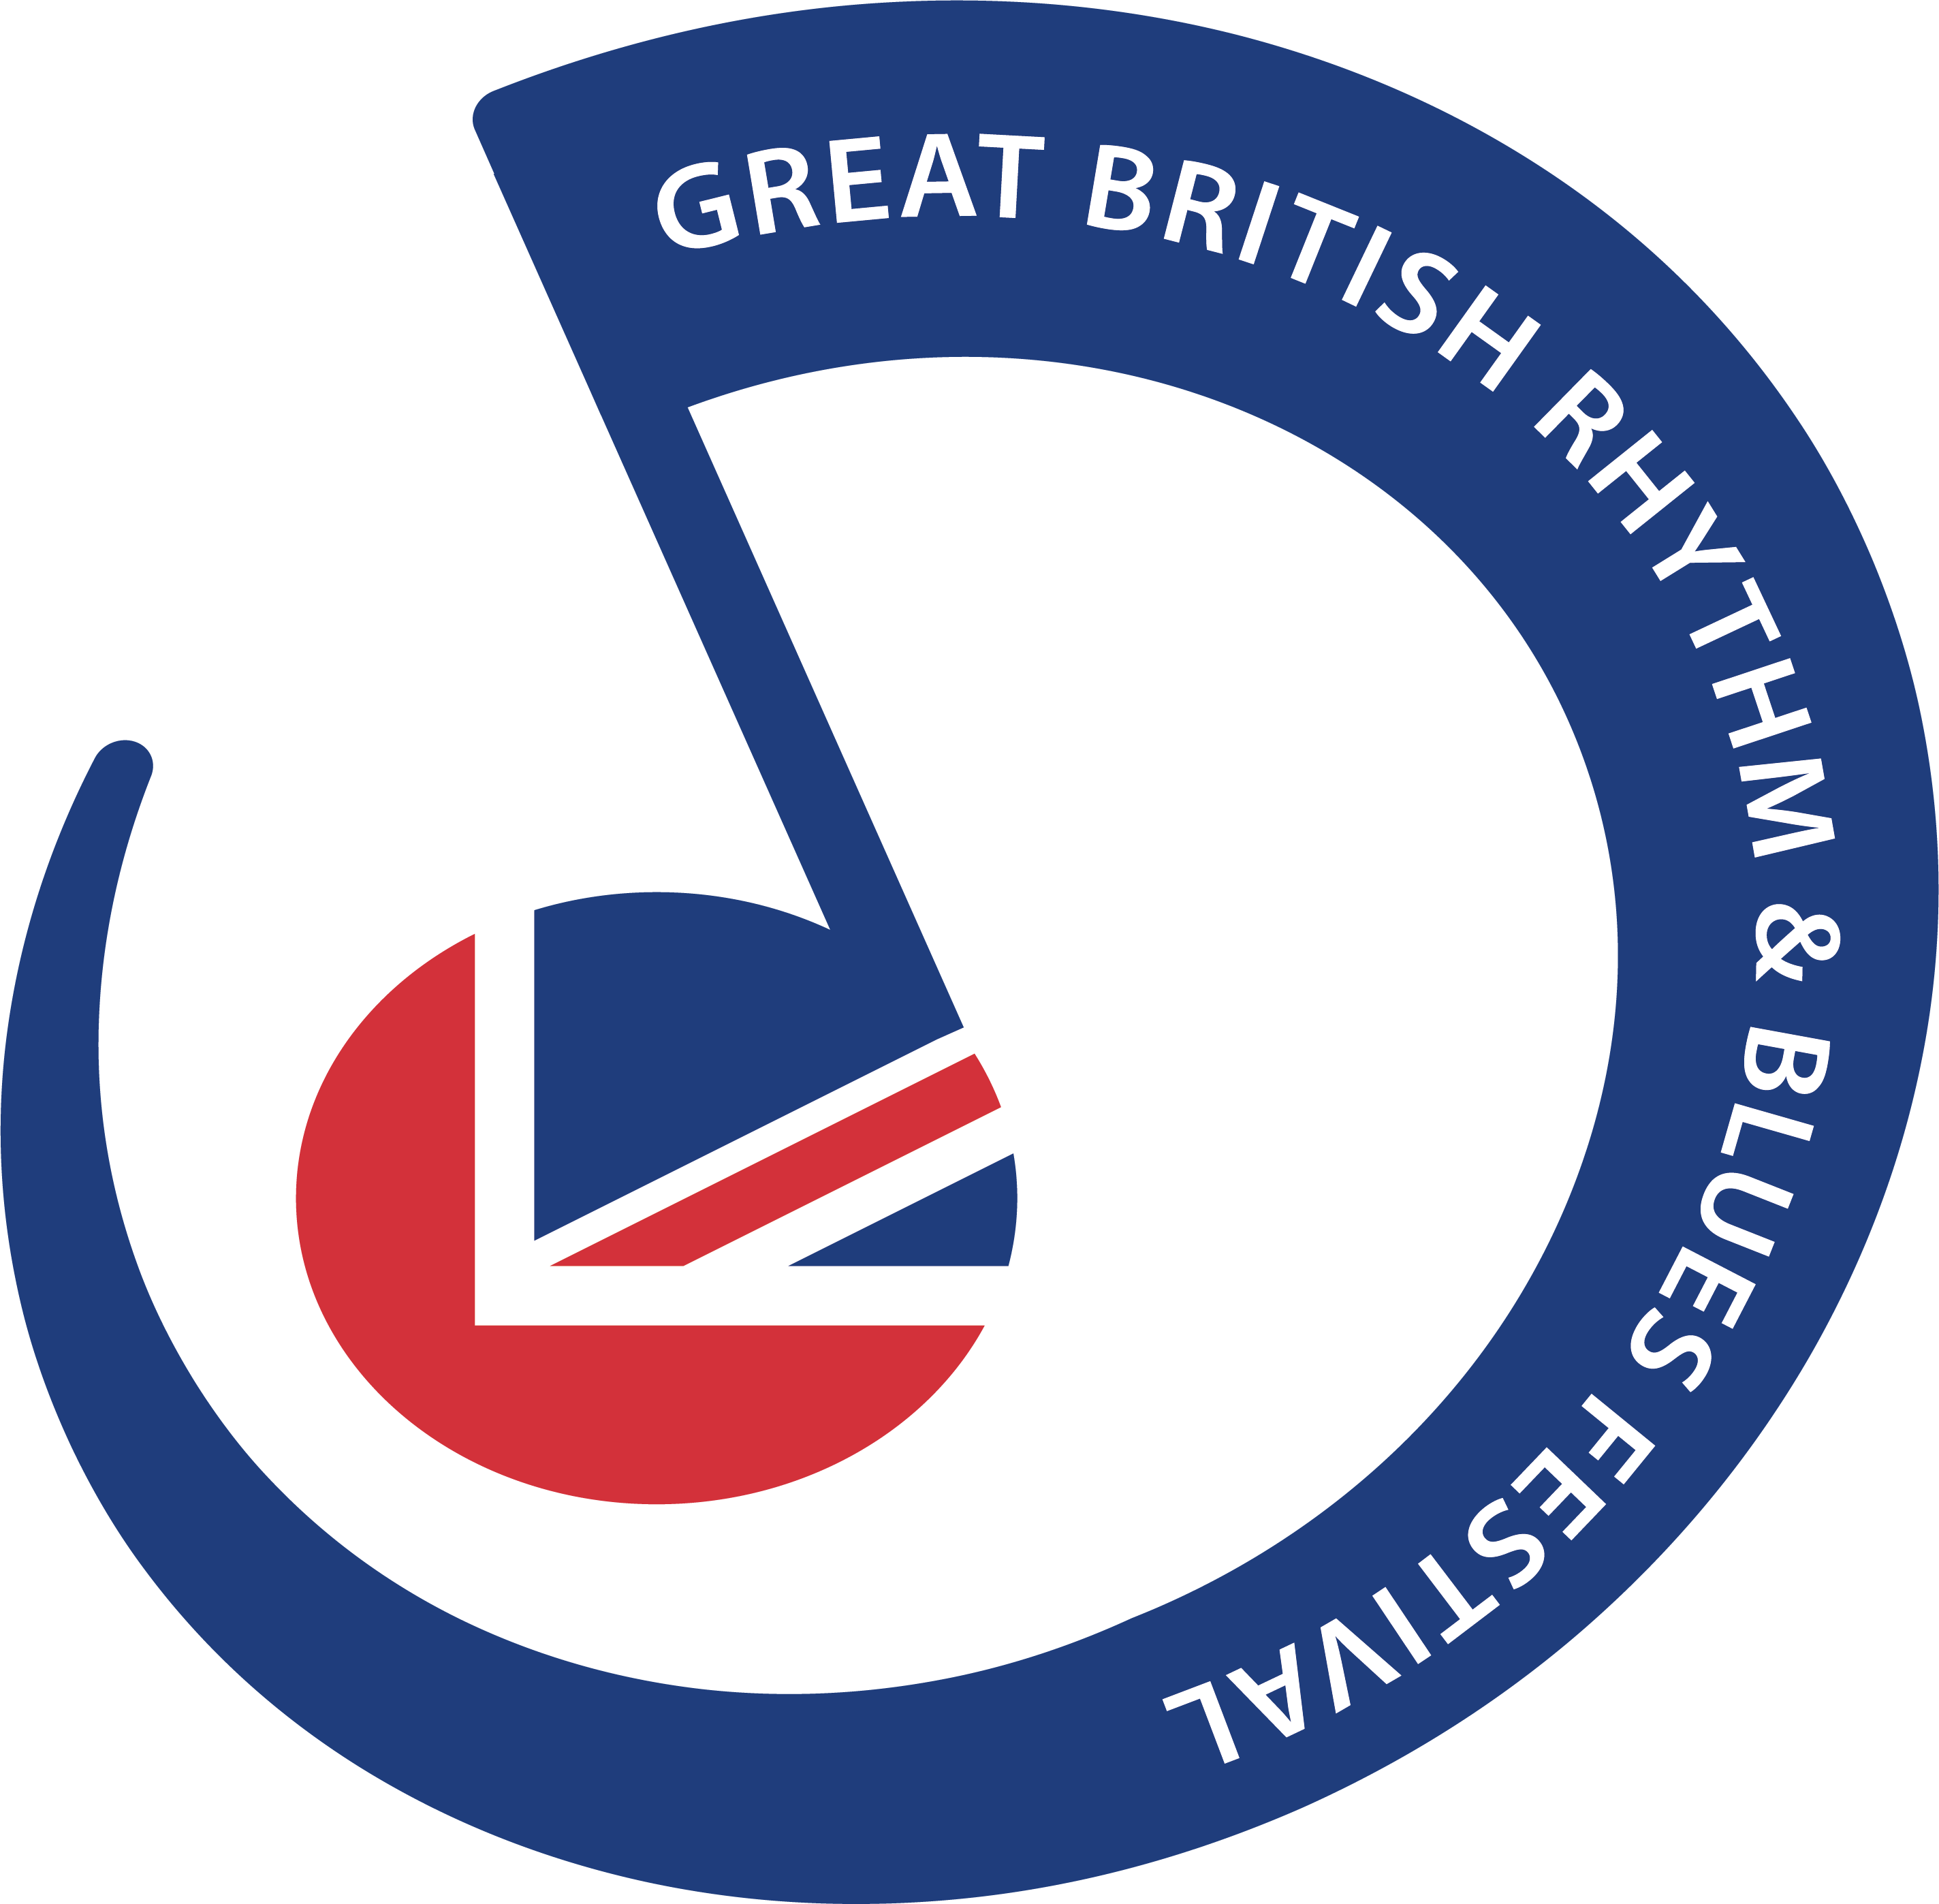 The Great British Rhythm & Blues Festival Camping  banner image